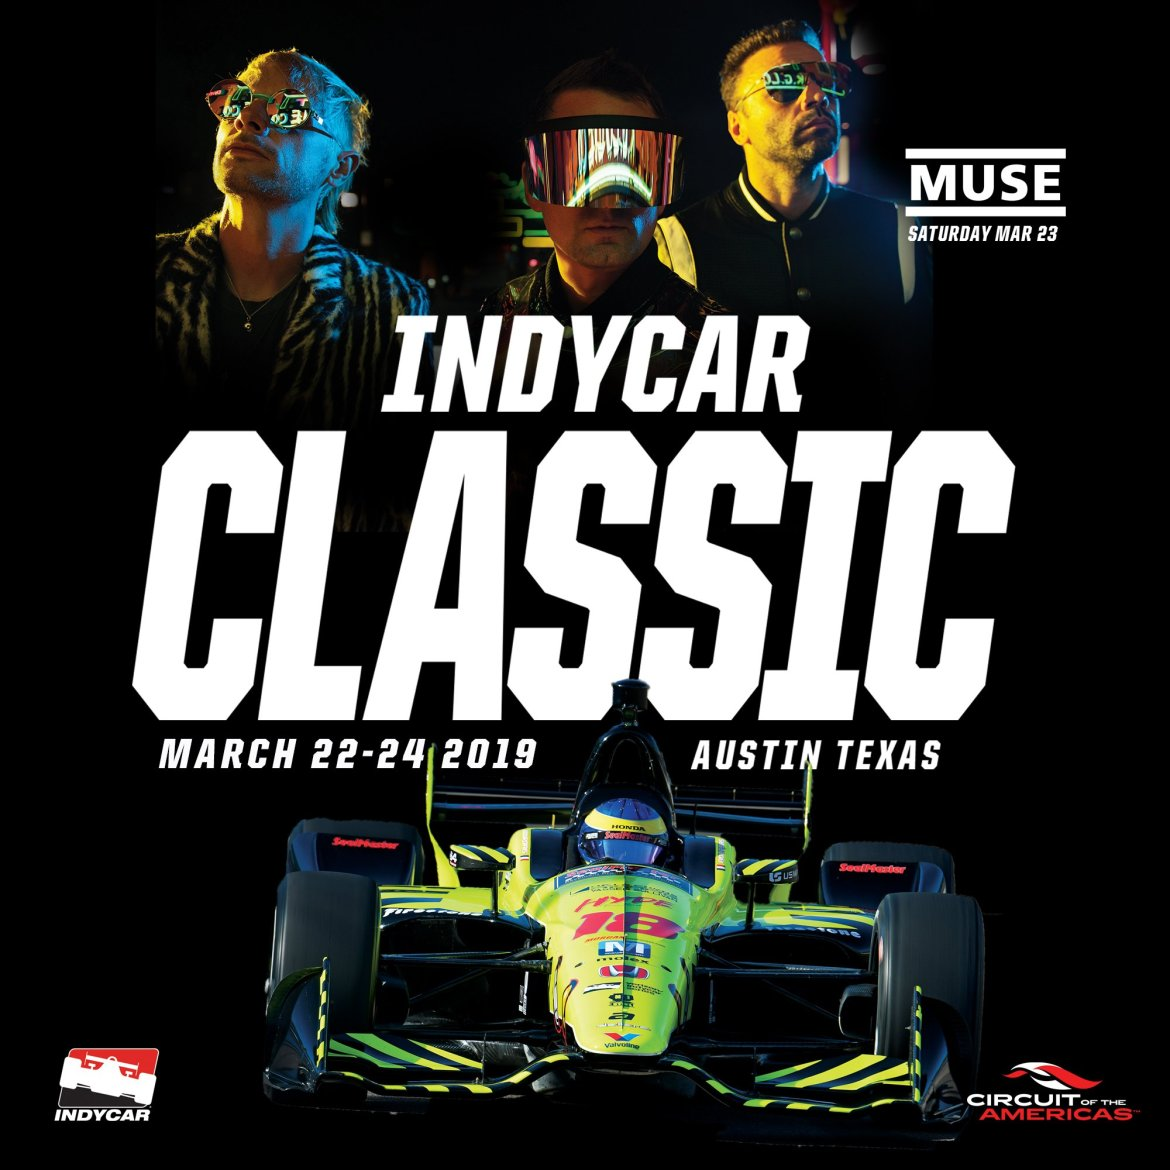 Muse to perform concert during COTA's inaugural IndyCarweekend